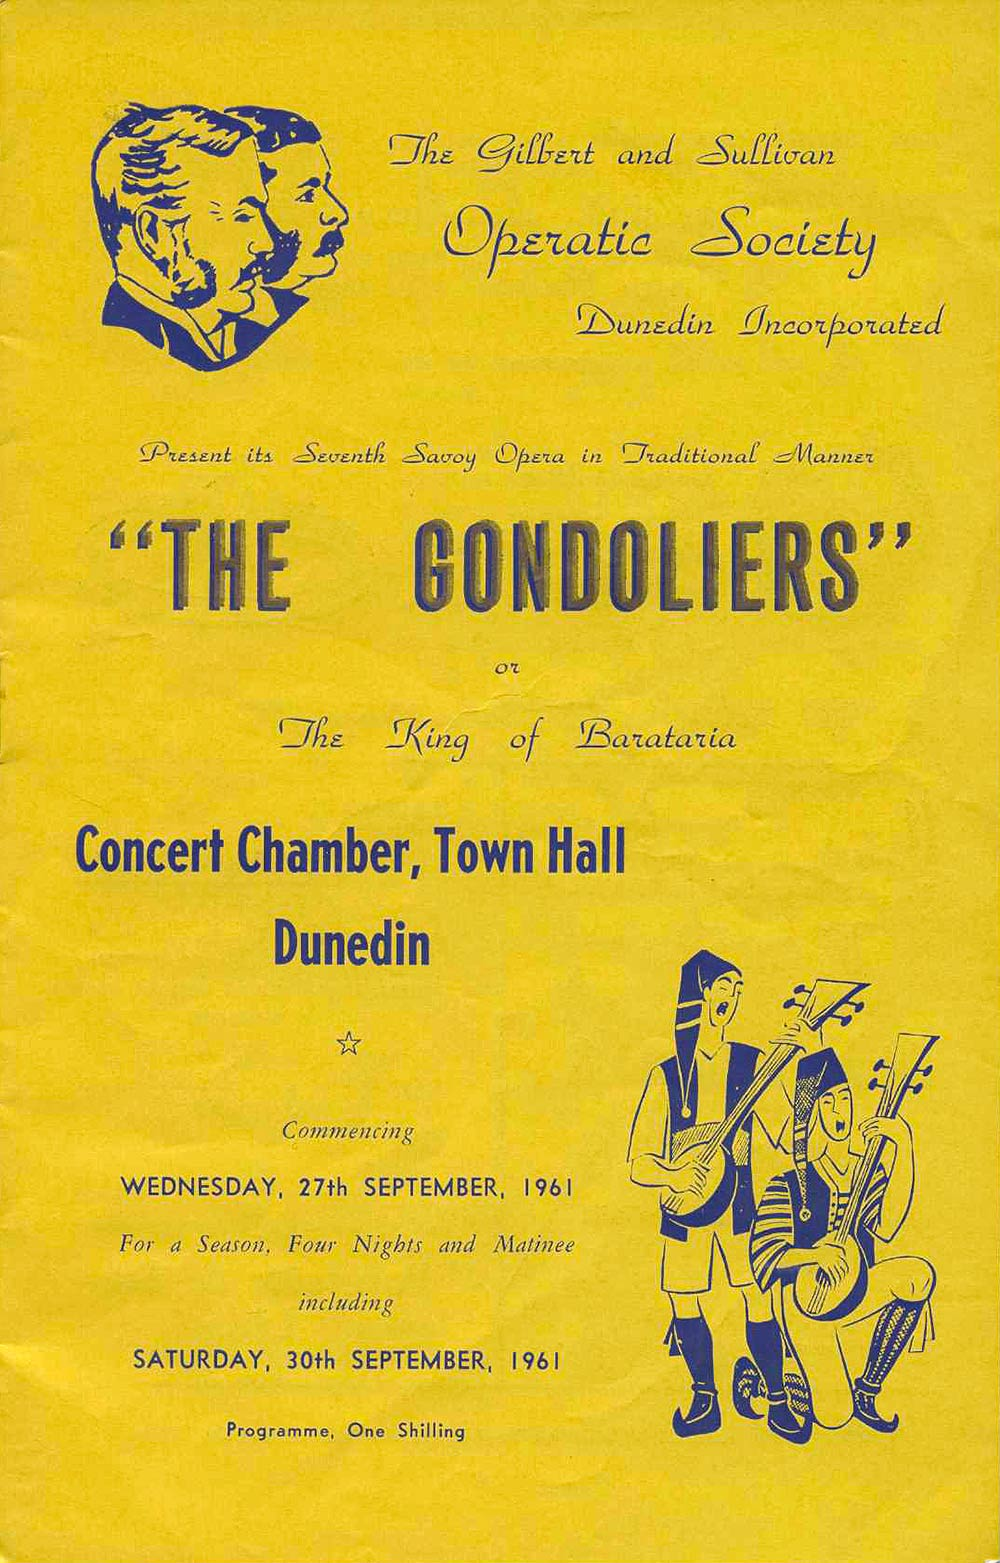 <em>The Gondoliers</em>. Libretto by W.S. Gilbert; music by Arthur Sullivan. (Gilbert and Sullivan Operatic Society Dunedin). Concert Chamber, Town Hall, Dunedin, Sept. 27-30, 1961.